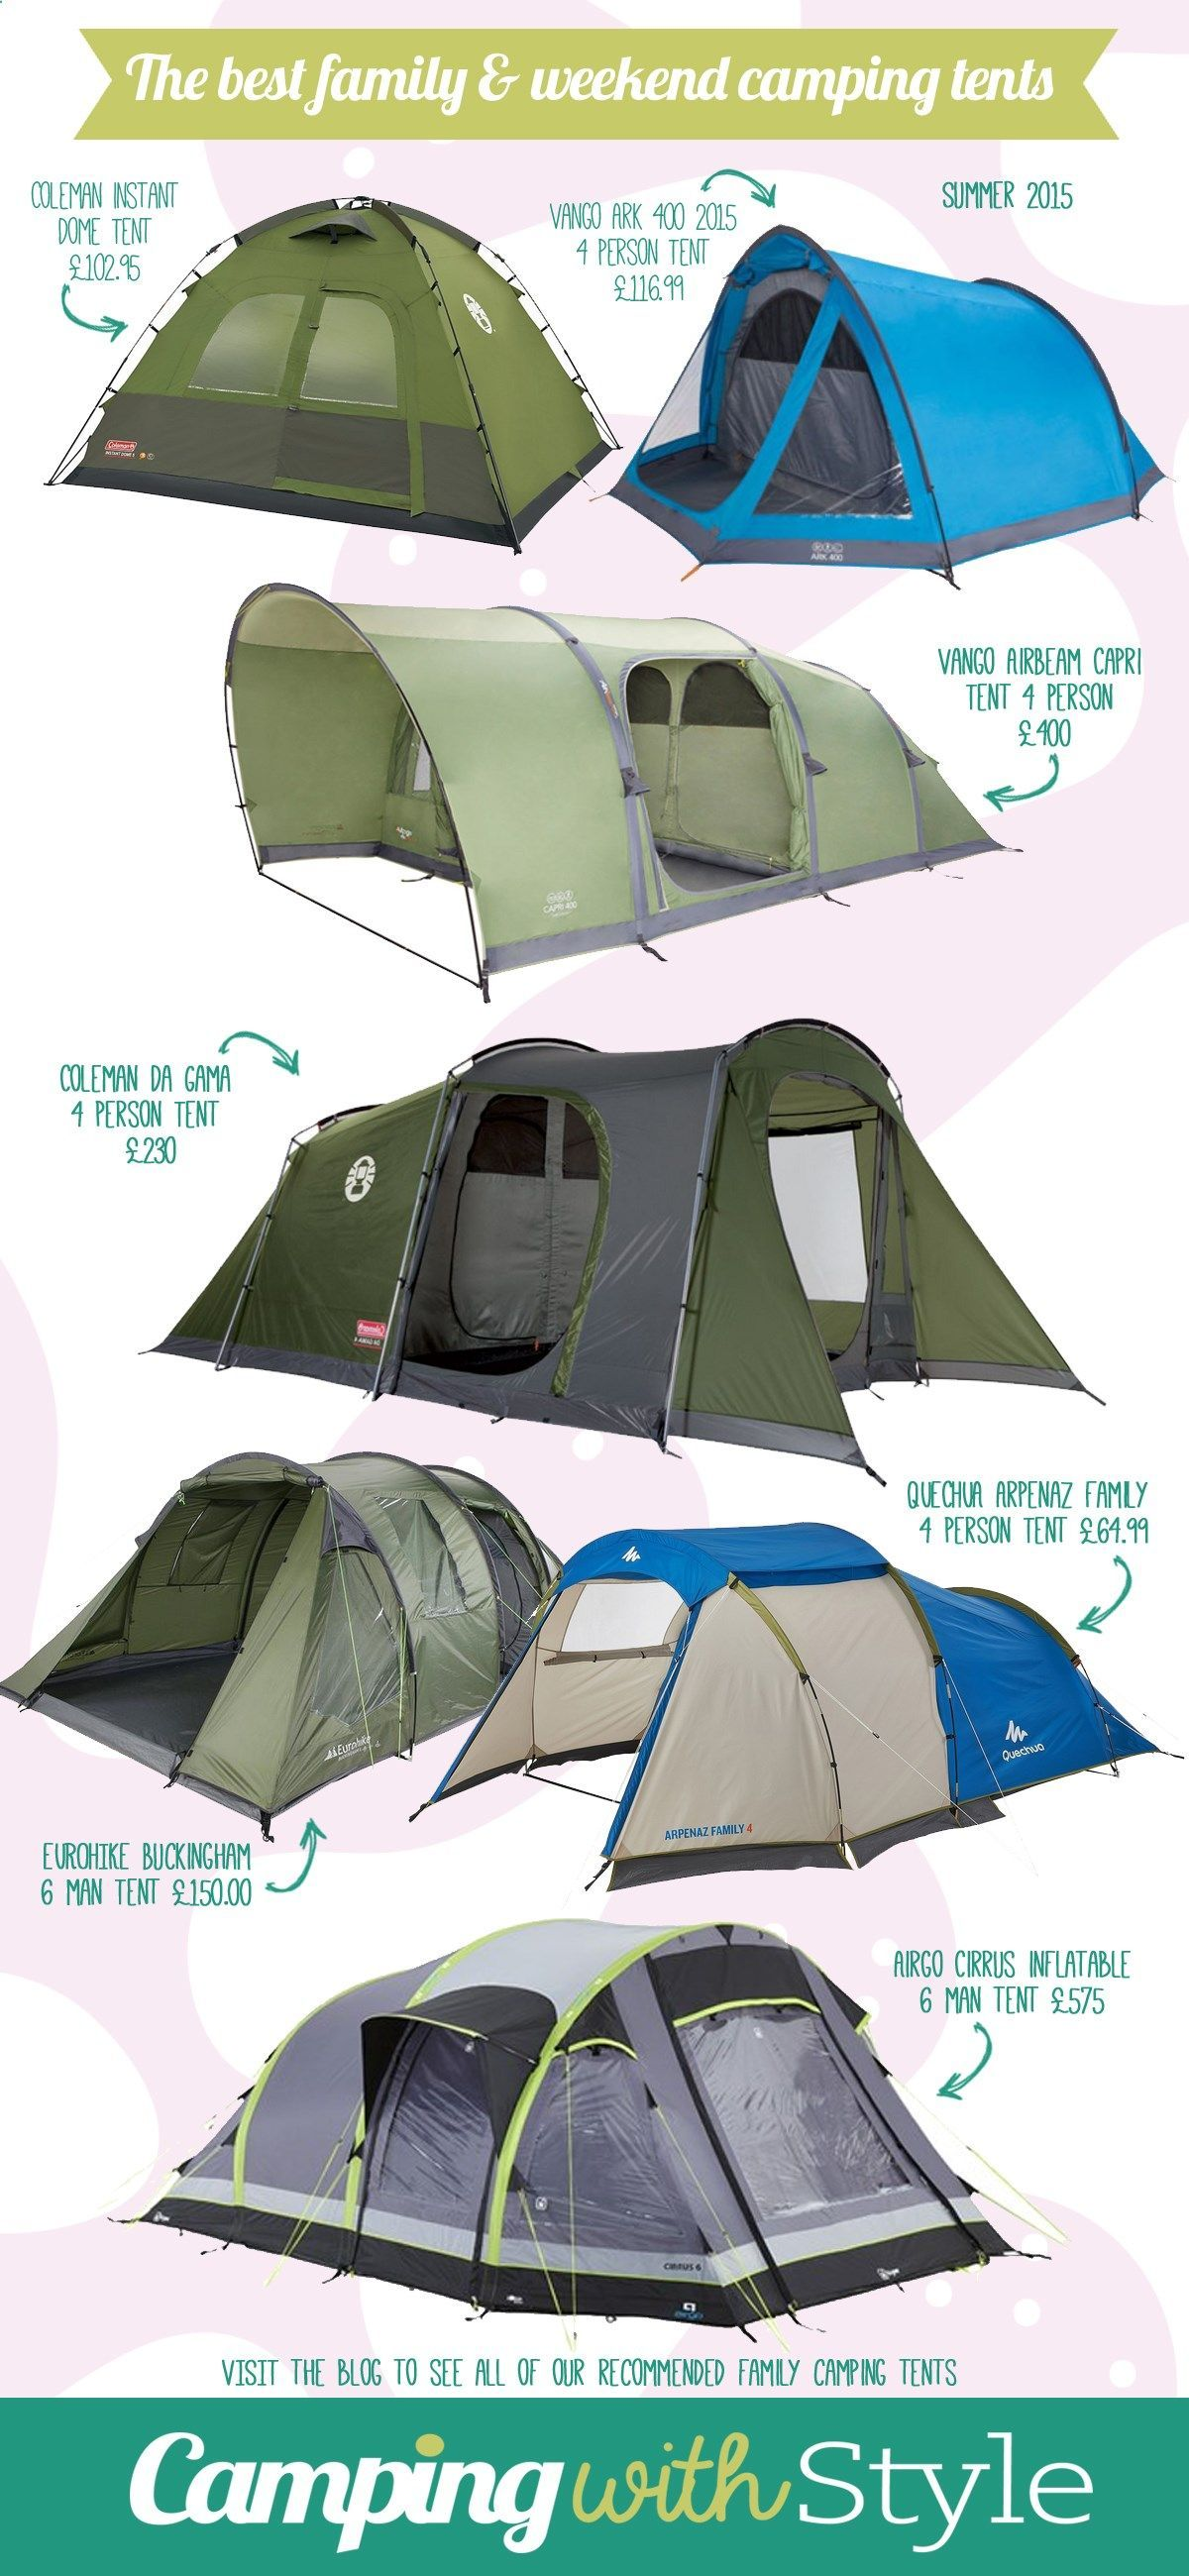 The best family camping and weekend tents for summer tents